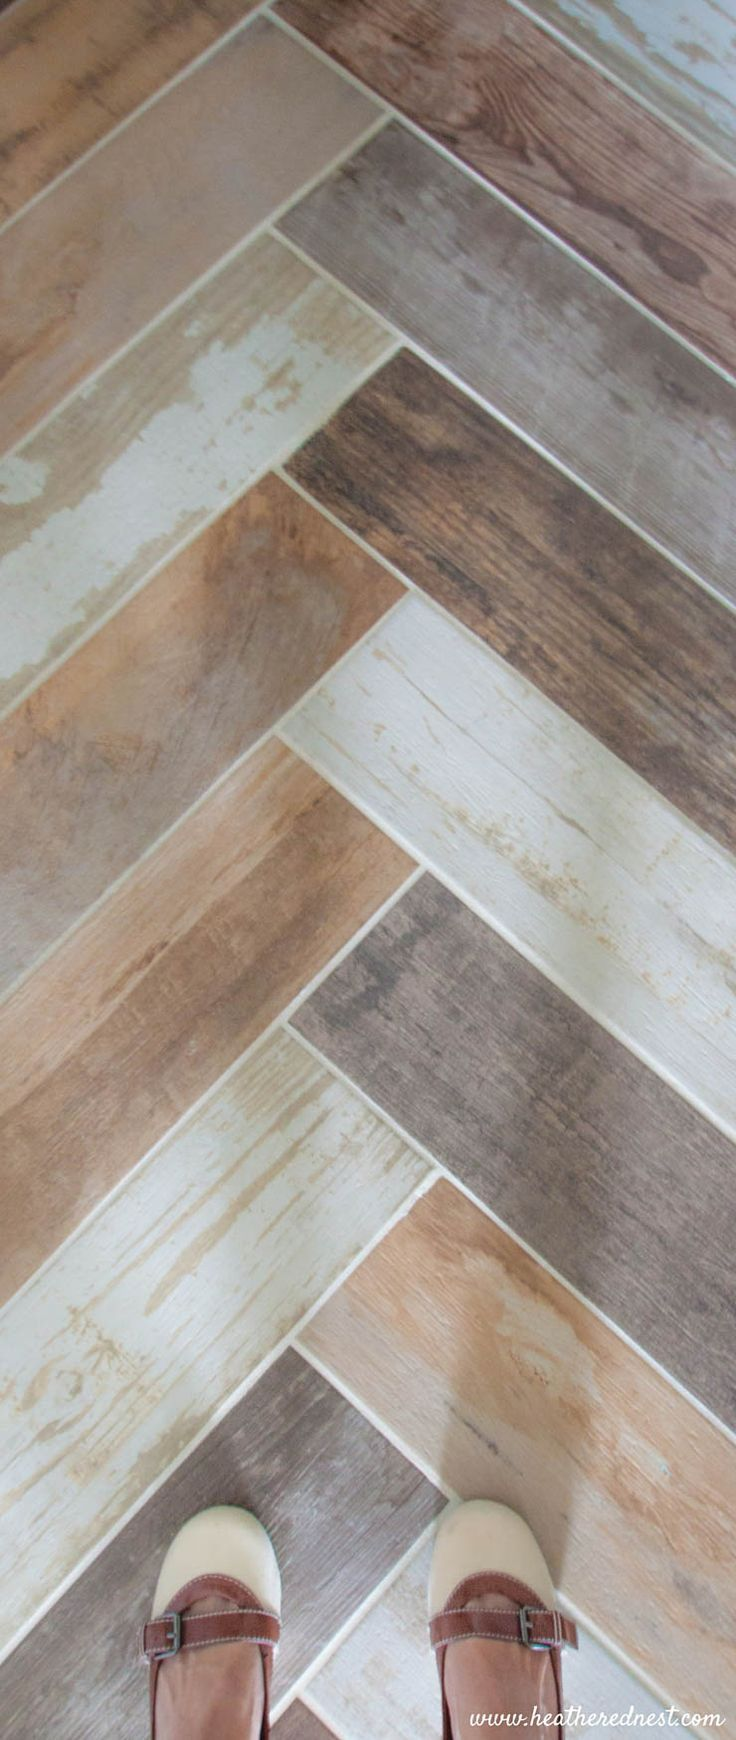 Marazzi Montagna Wood Vintage Chic 6 In X 24 In Porcelain Floor And Wall Tile 14 53 Sq Ft Case